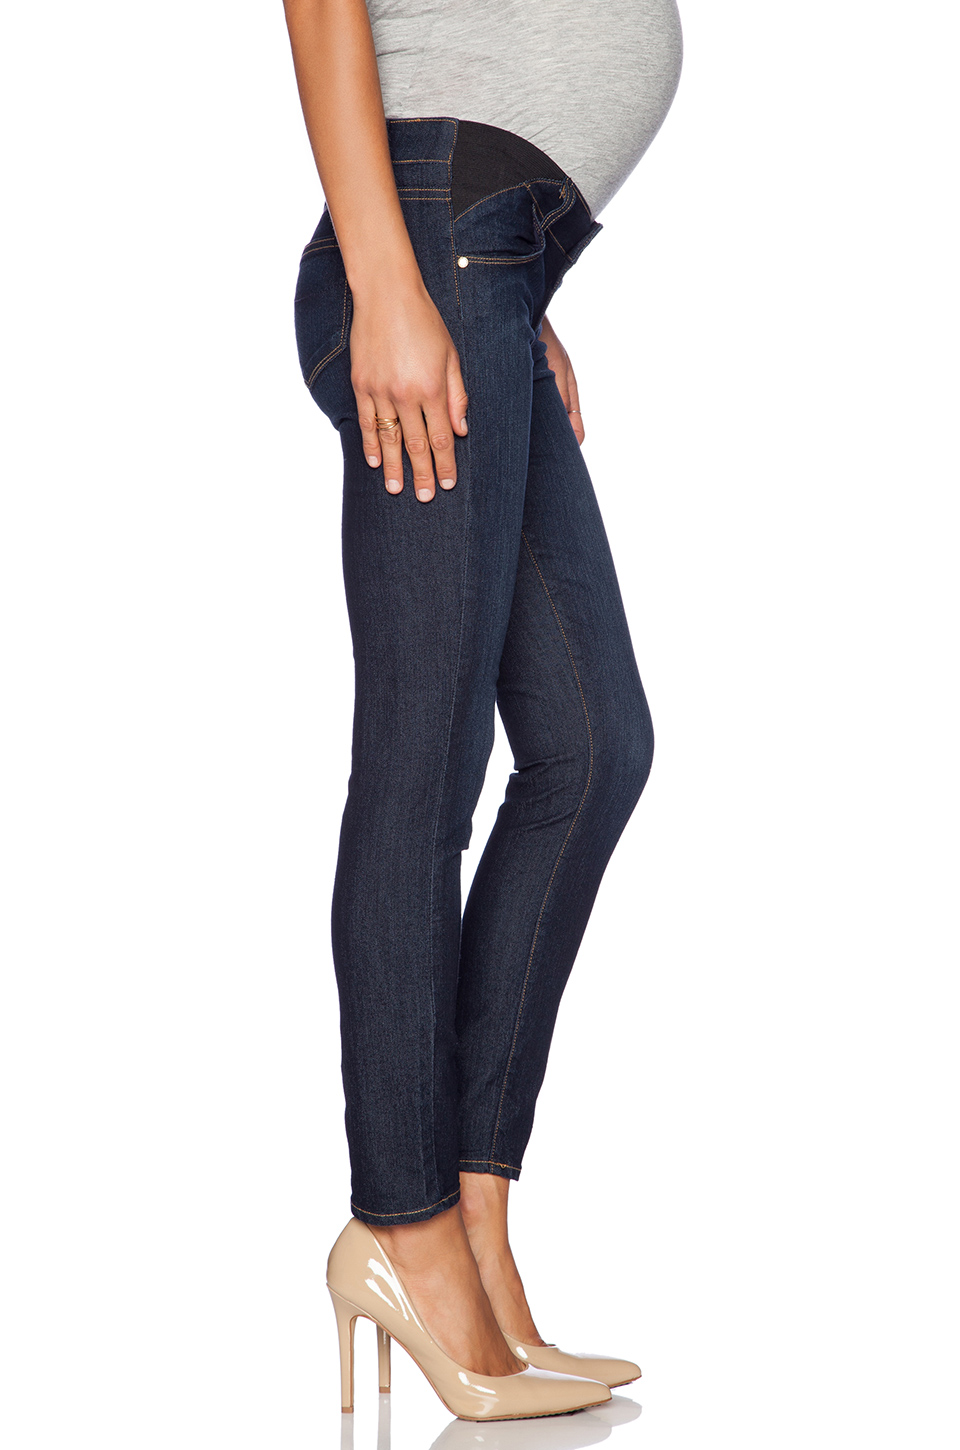 Paige Denim Skyline Ankle Peg Maternity in Carson